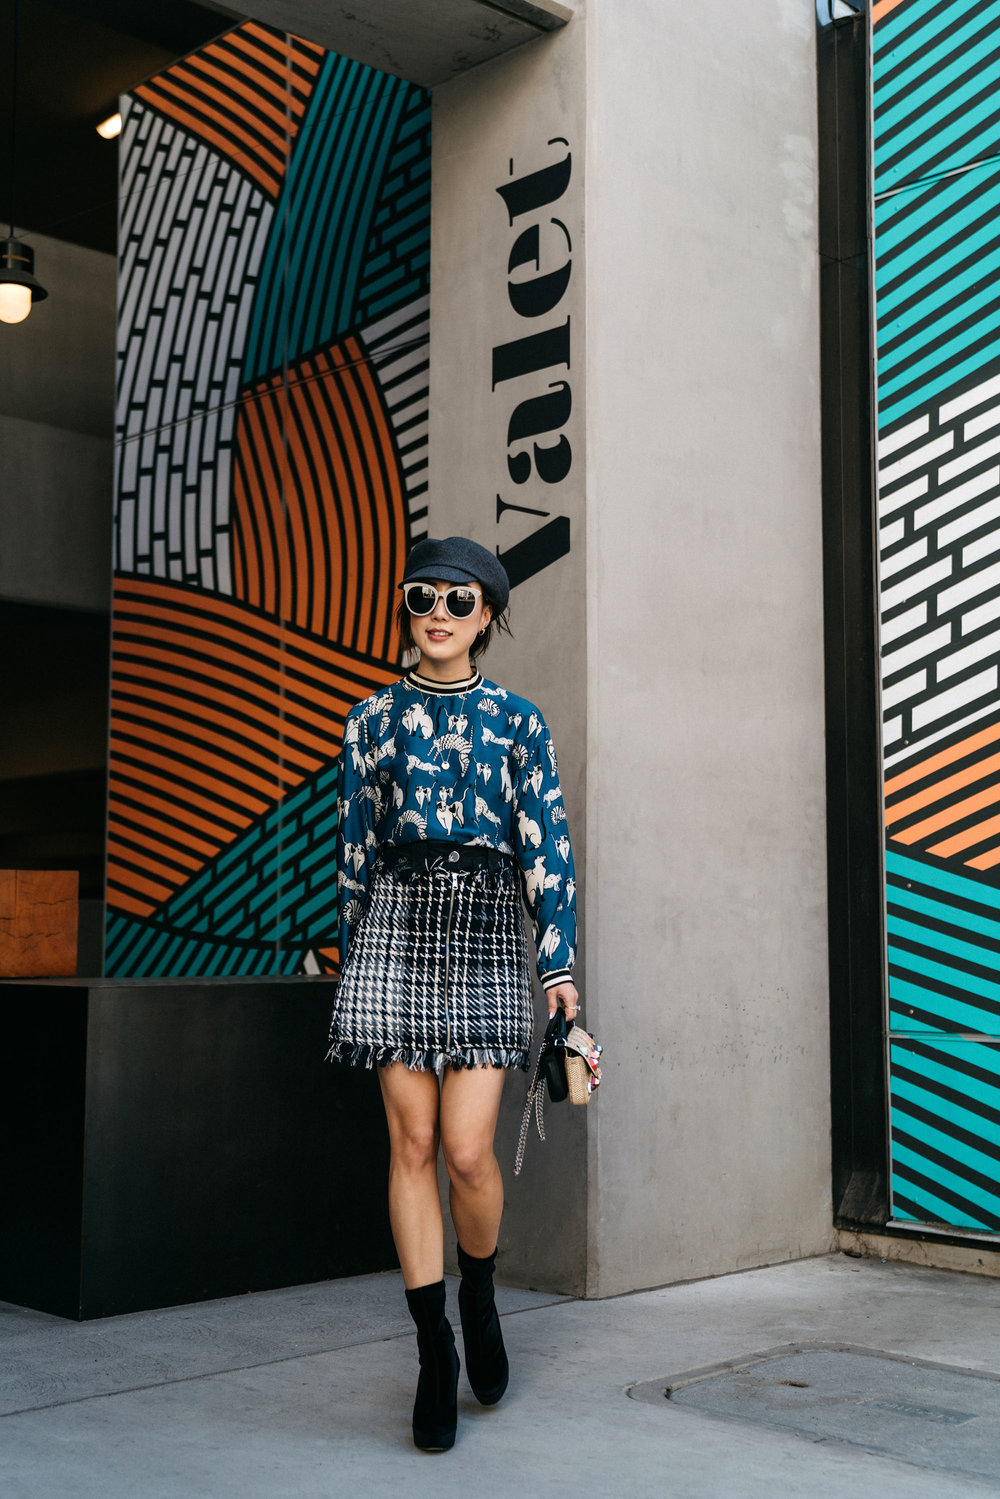 Zara Top  and  Skirt , Miu Miu Boots, Fendi Bag, Hermes Hat, Gentle Monster Sunglasses